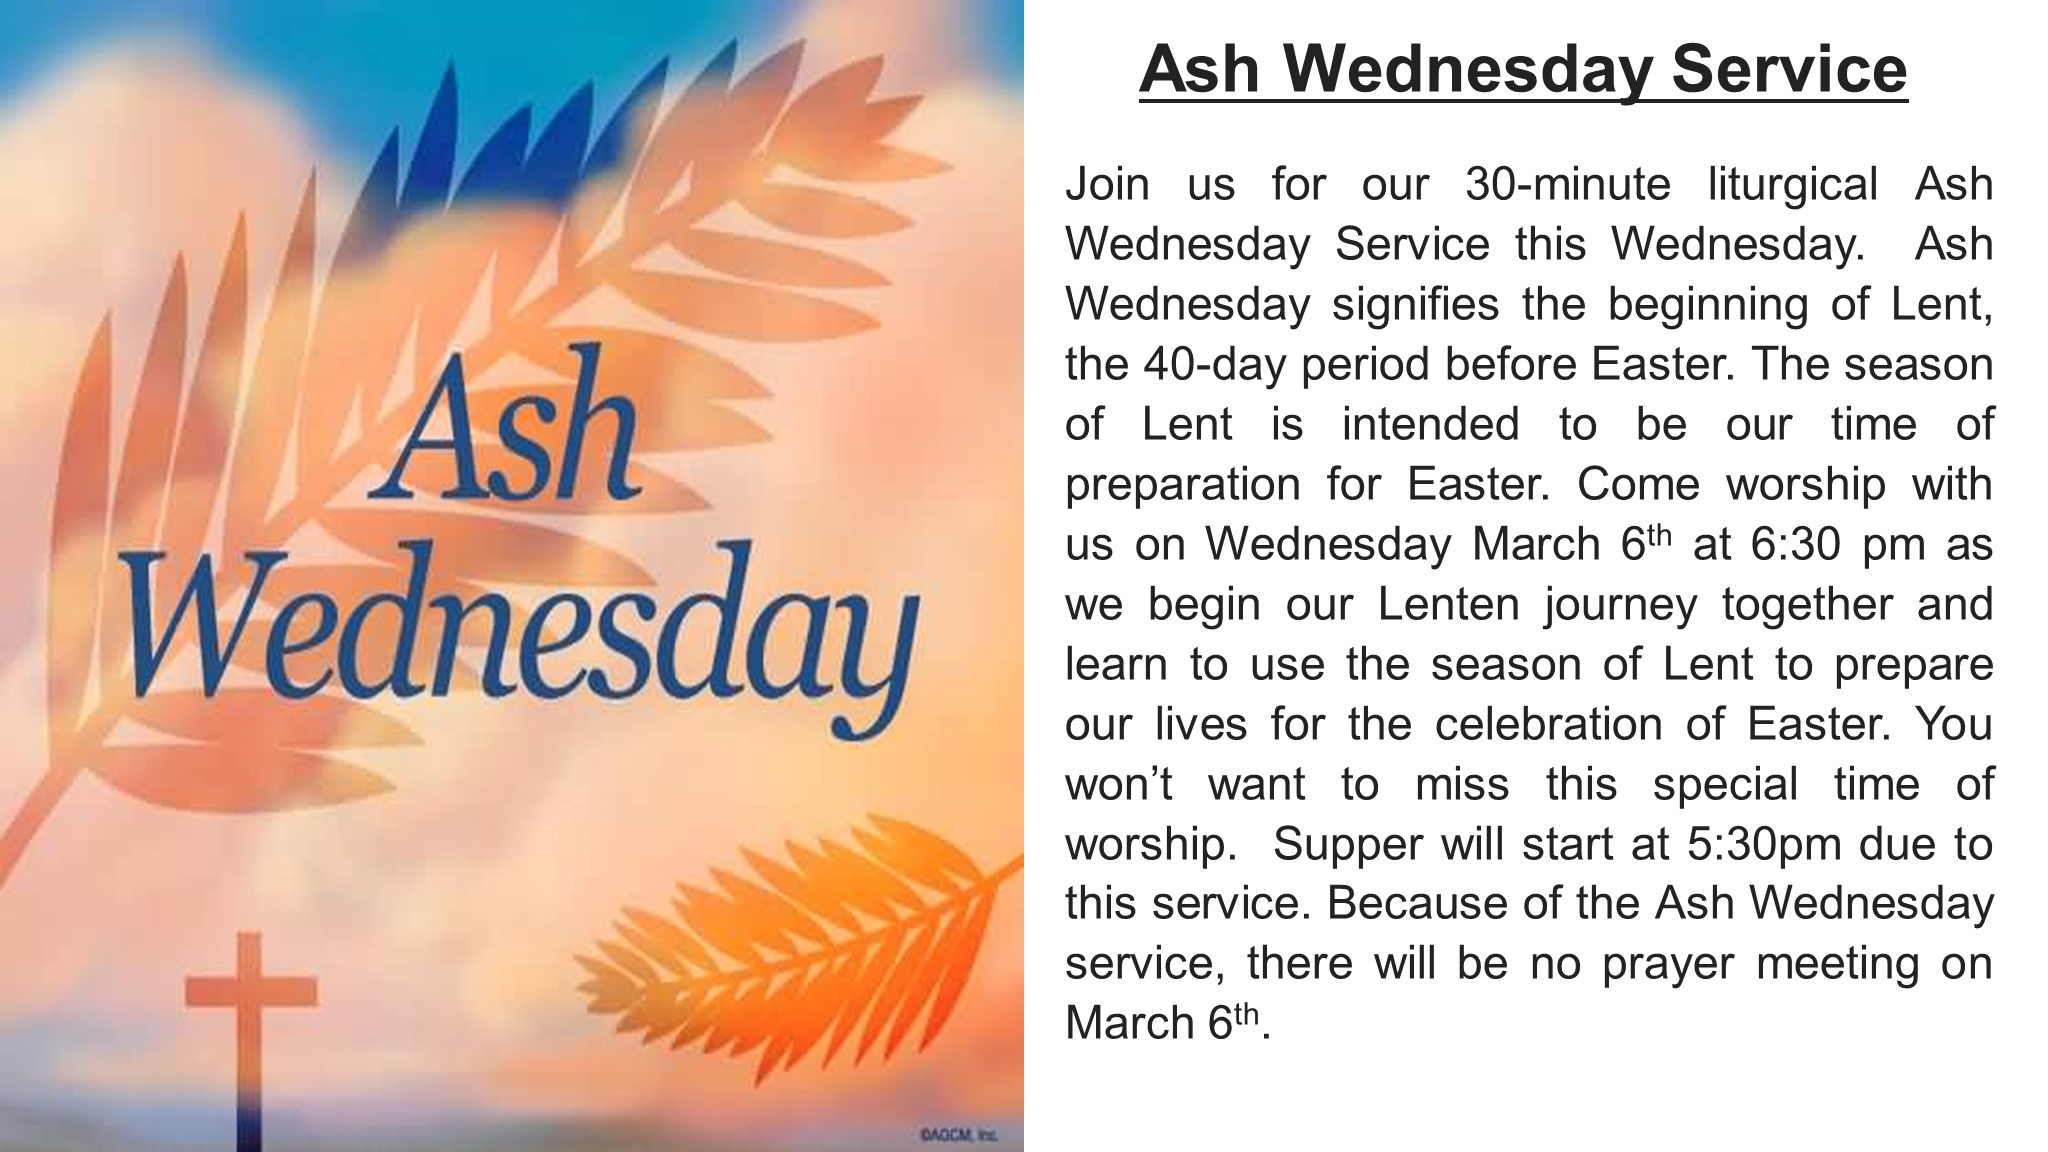 Ash Wednesday Service ad 2019.jpg